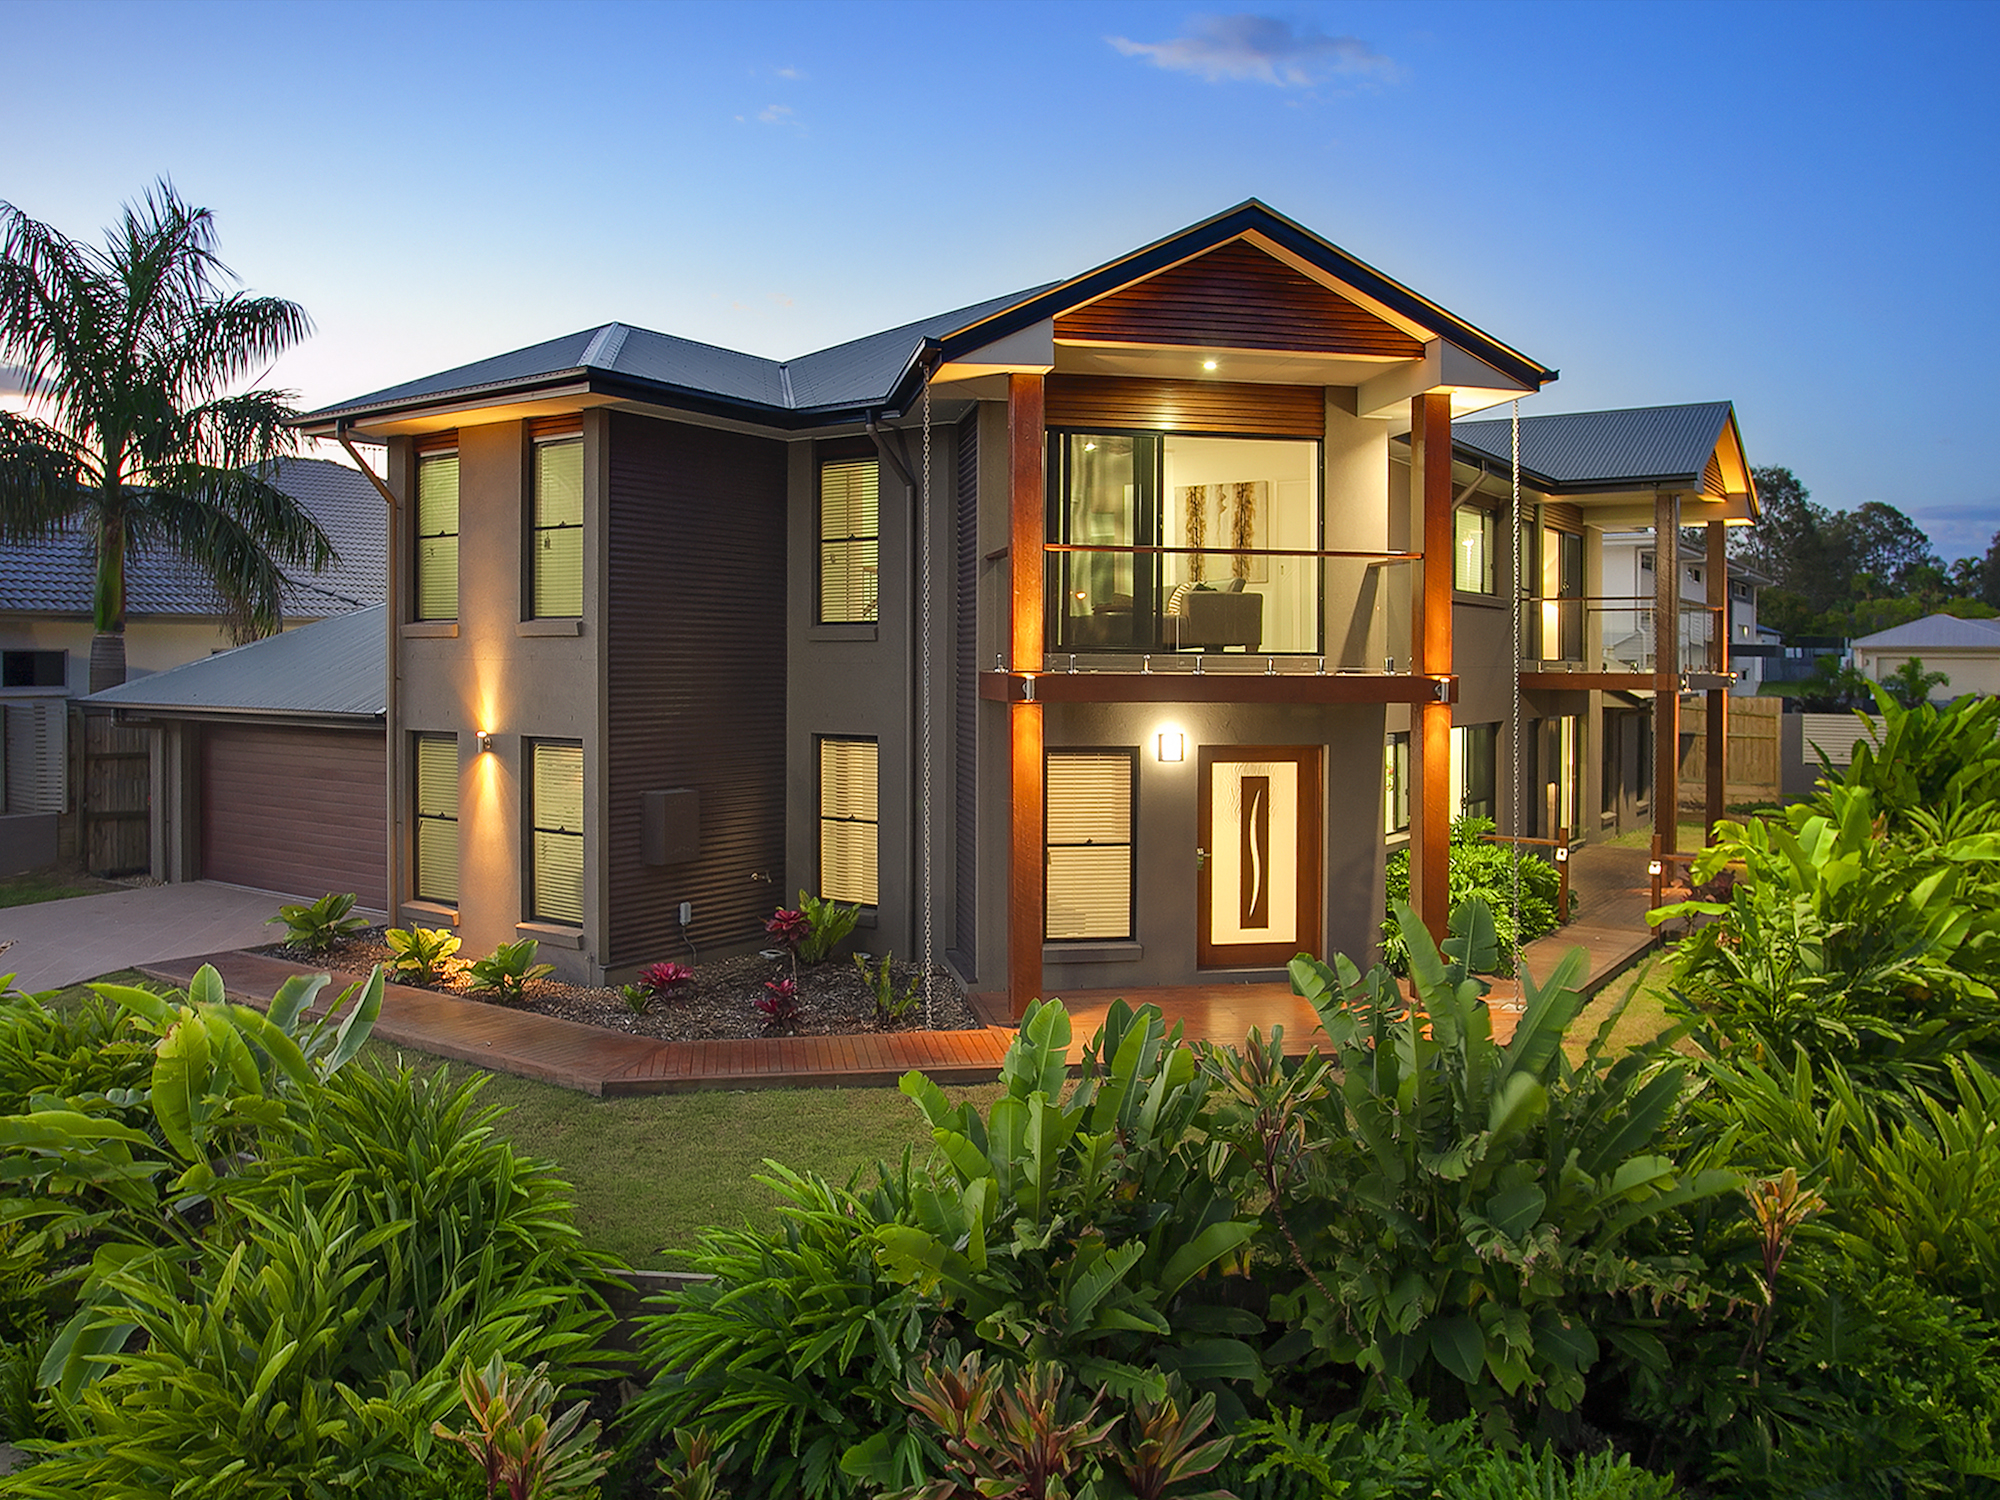 Recently sold kelrow constructions pty ltd for Corner block home designs